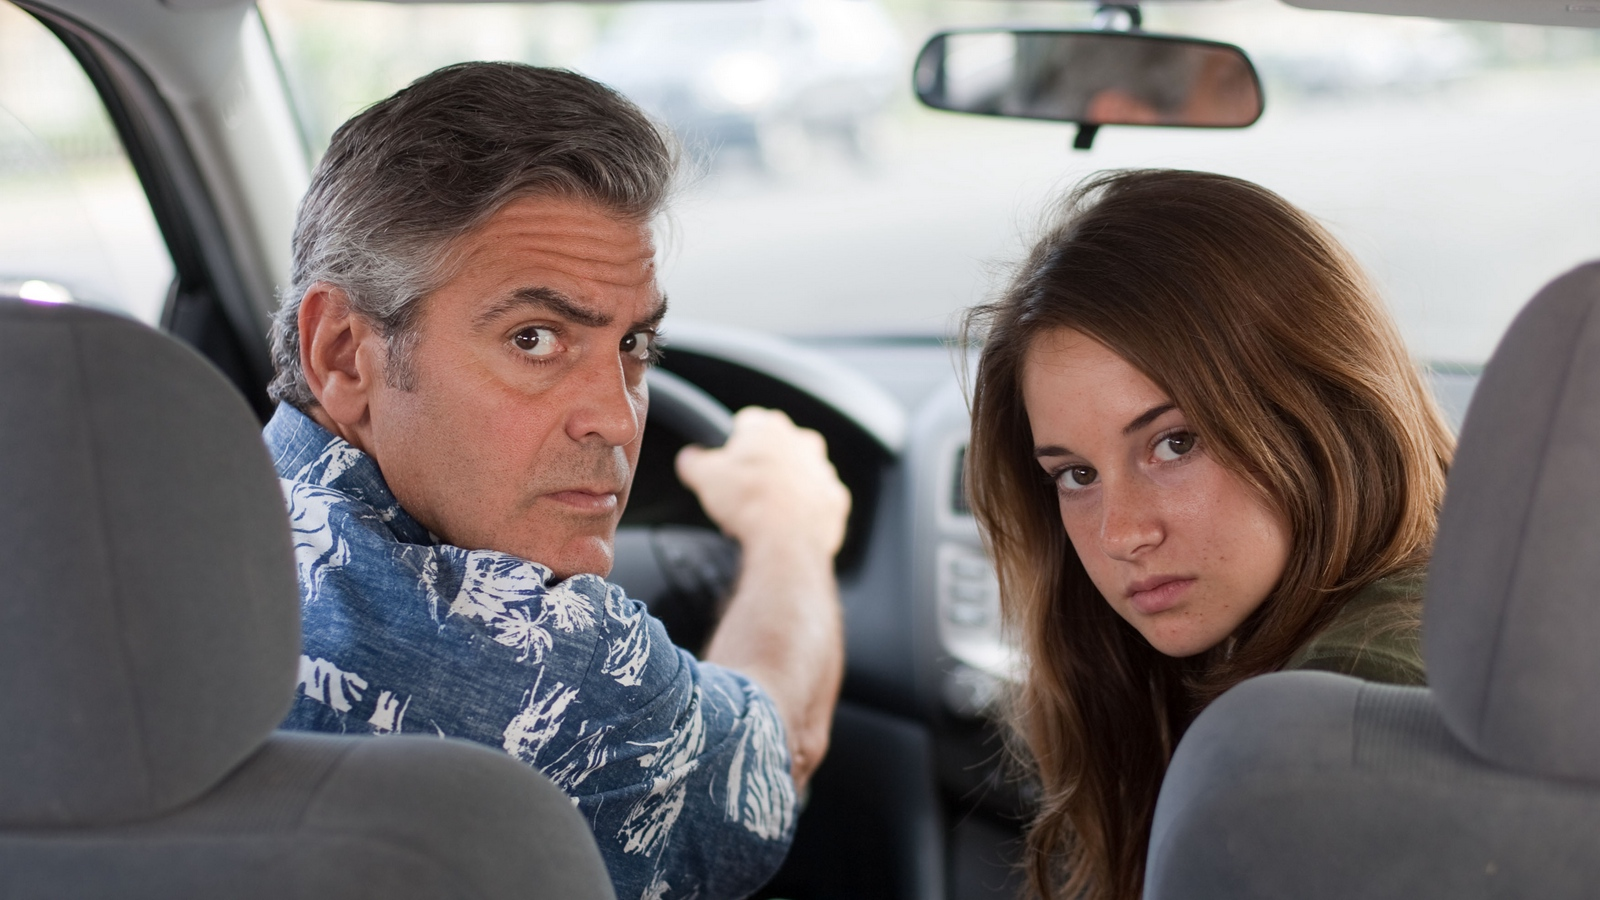 Download wallpaper 1600x900 the descendants george clooney 1600x900